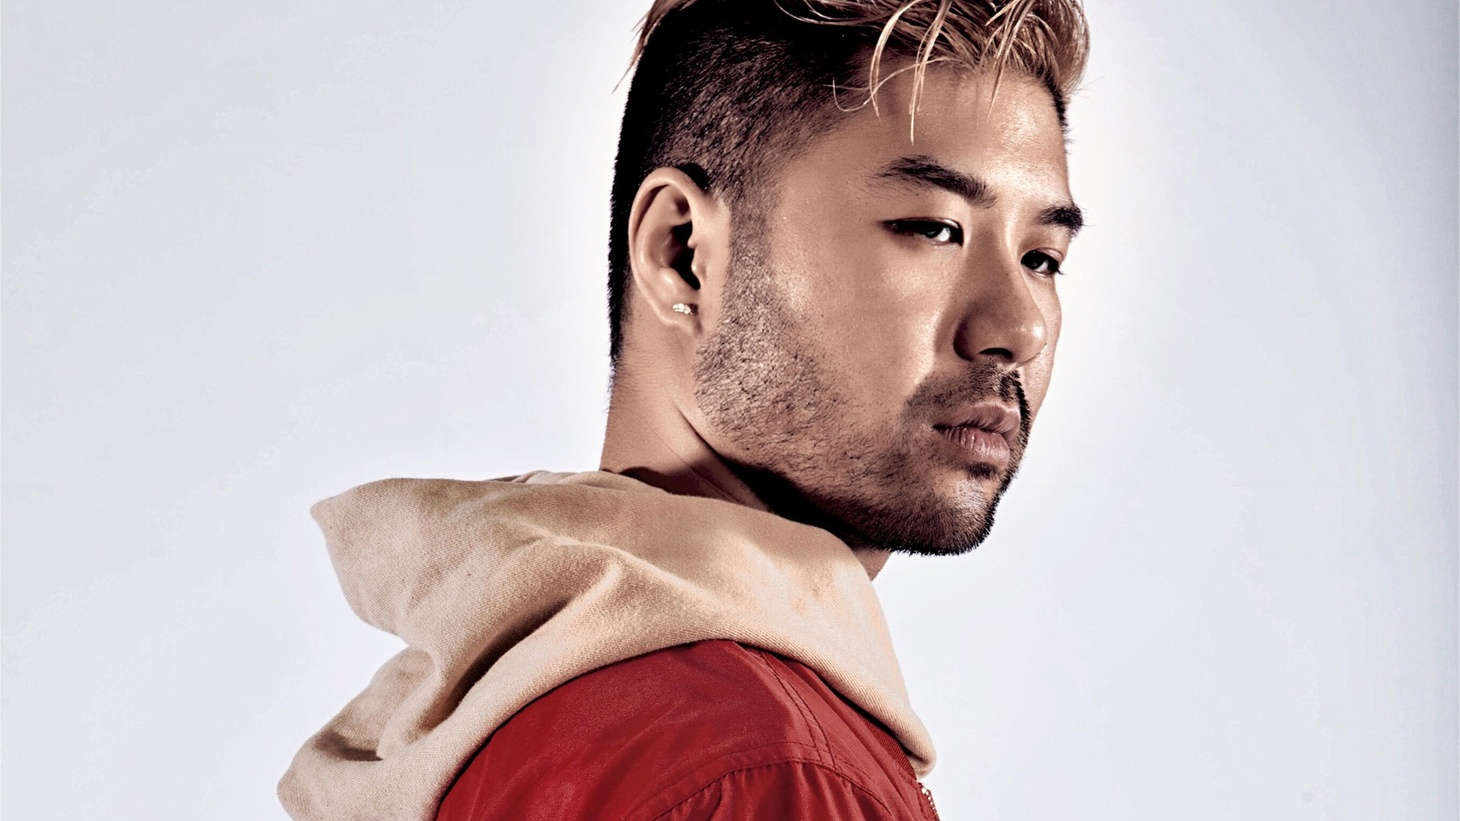 Based here in Los Angeles via Sydney, producer Danny Chien, a.k.a Wax Motif plays a major part in our vivacious local electronic landscape as one of the west coast's scene's brightest power players.